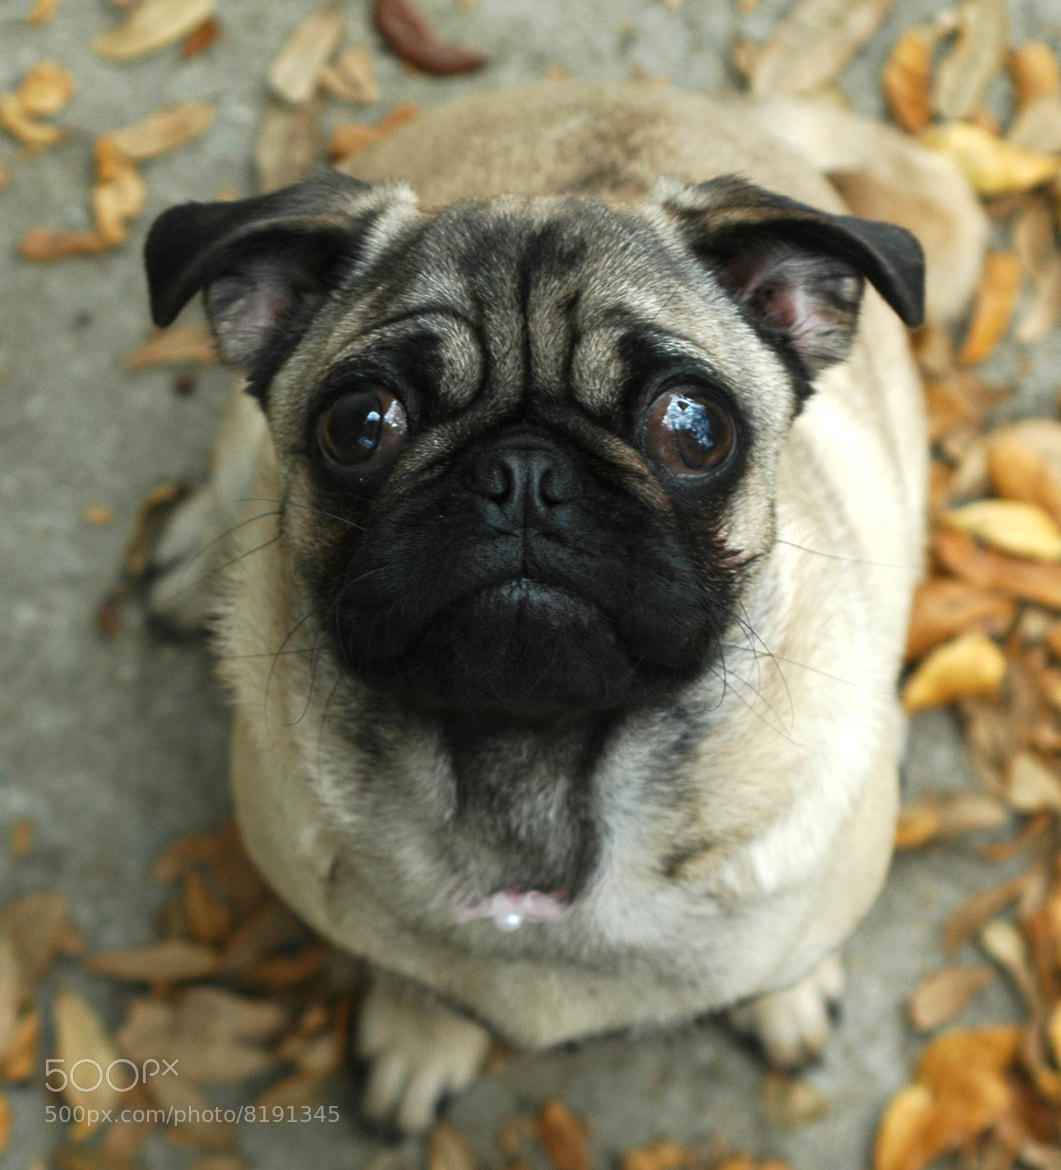 Photograph Pug with Expressive Face by Jesse  Kunerth on 500px